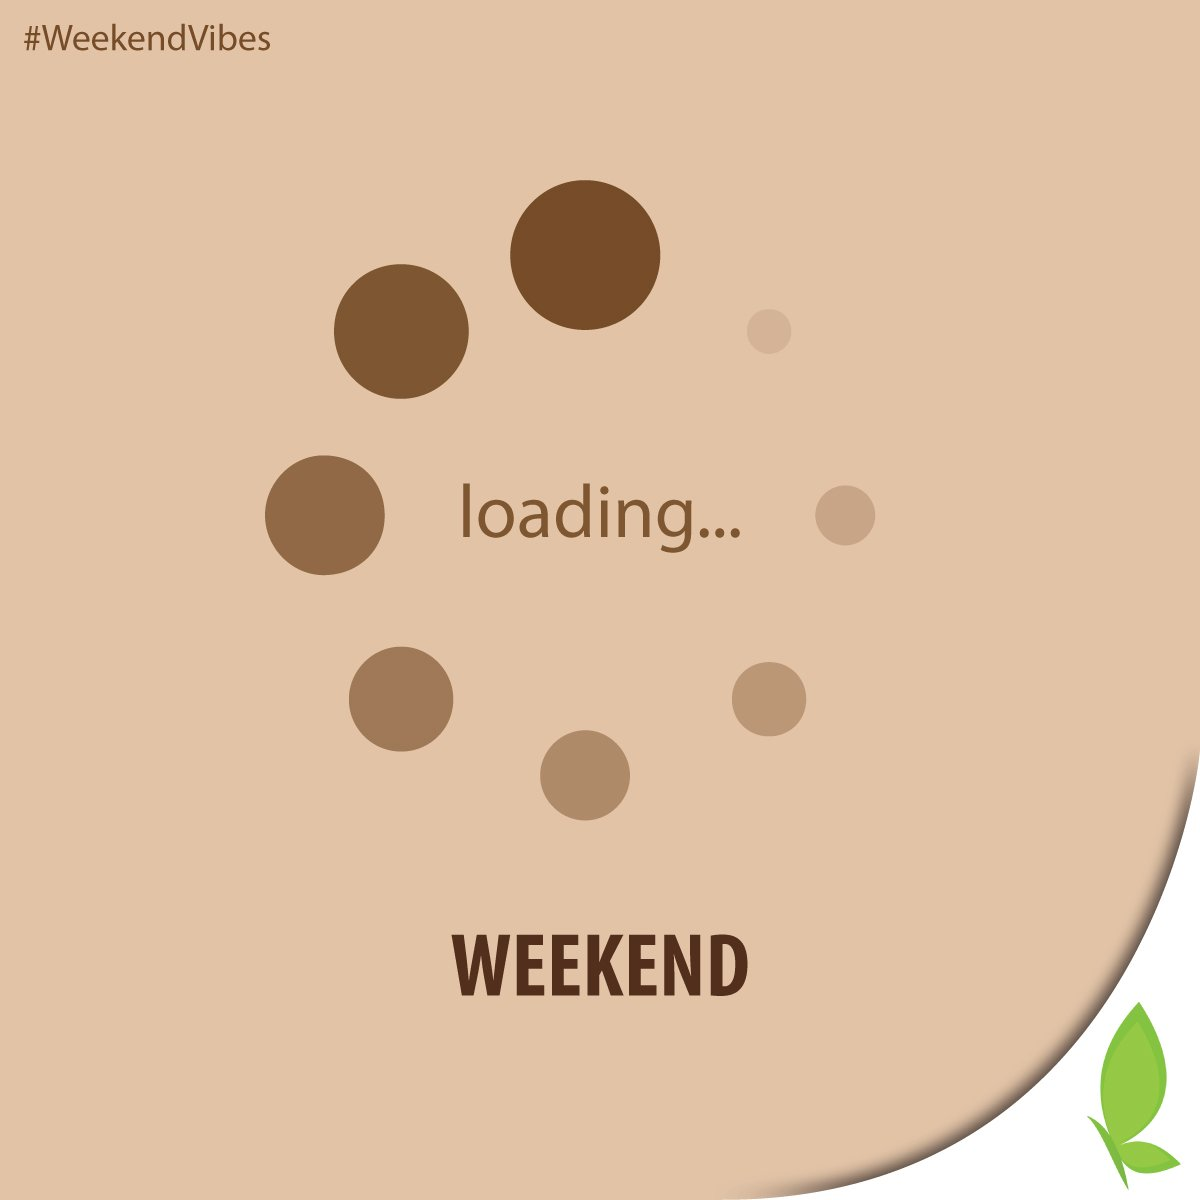 and the weekend is loading and loading and loading fun saturday programmers quotes funny